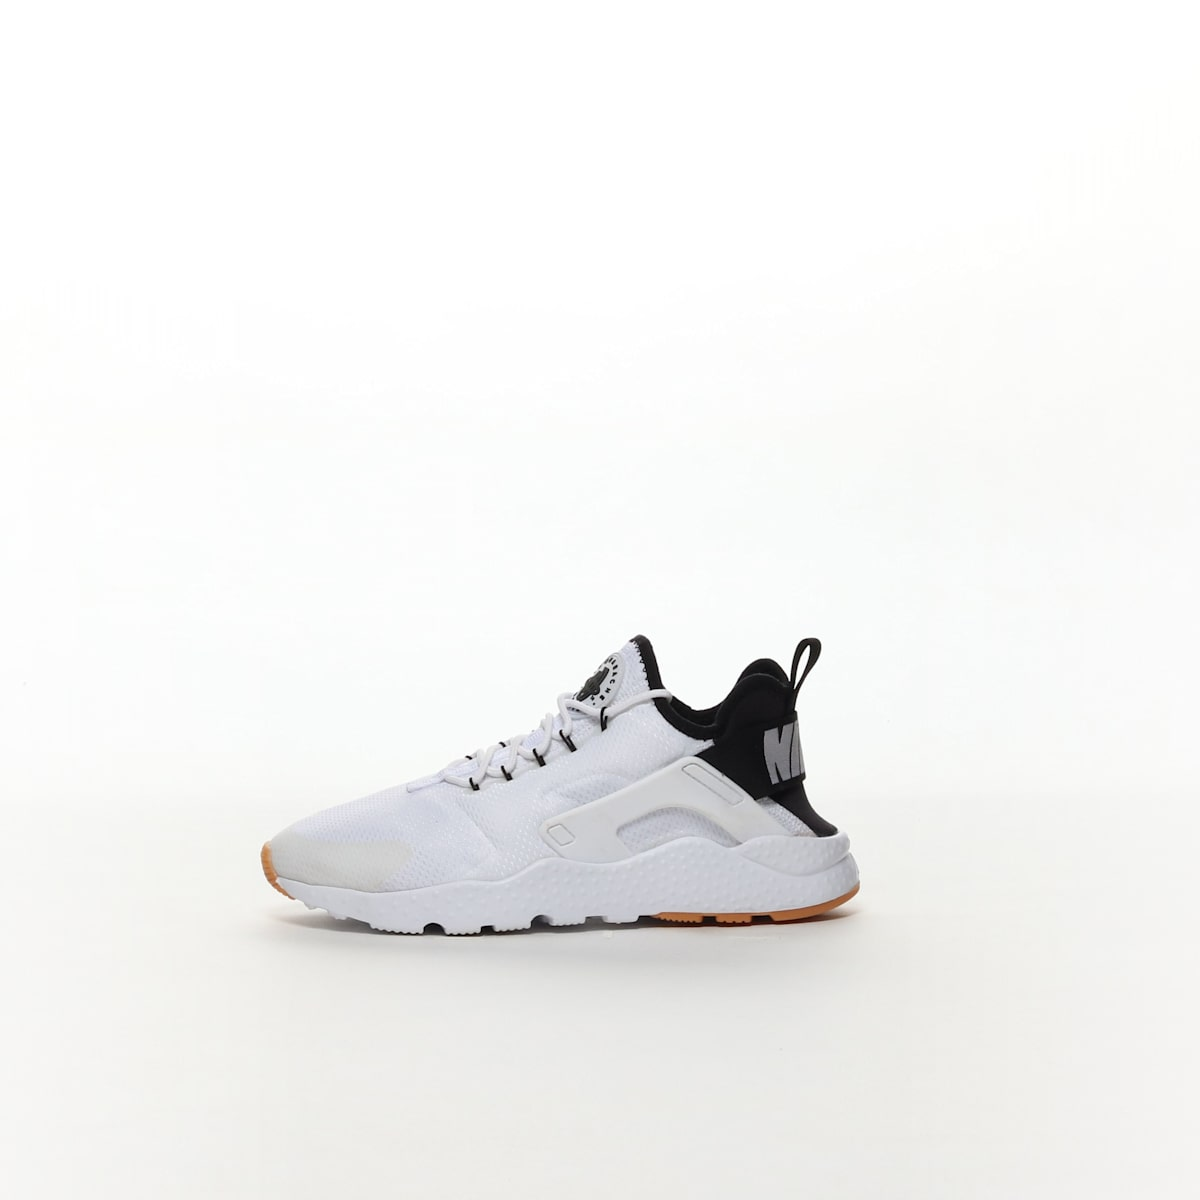 1b5c093348af3 Nike Air Huarache Run Ultra Women s Shoe - WHITE BLACK – Resku